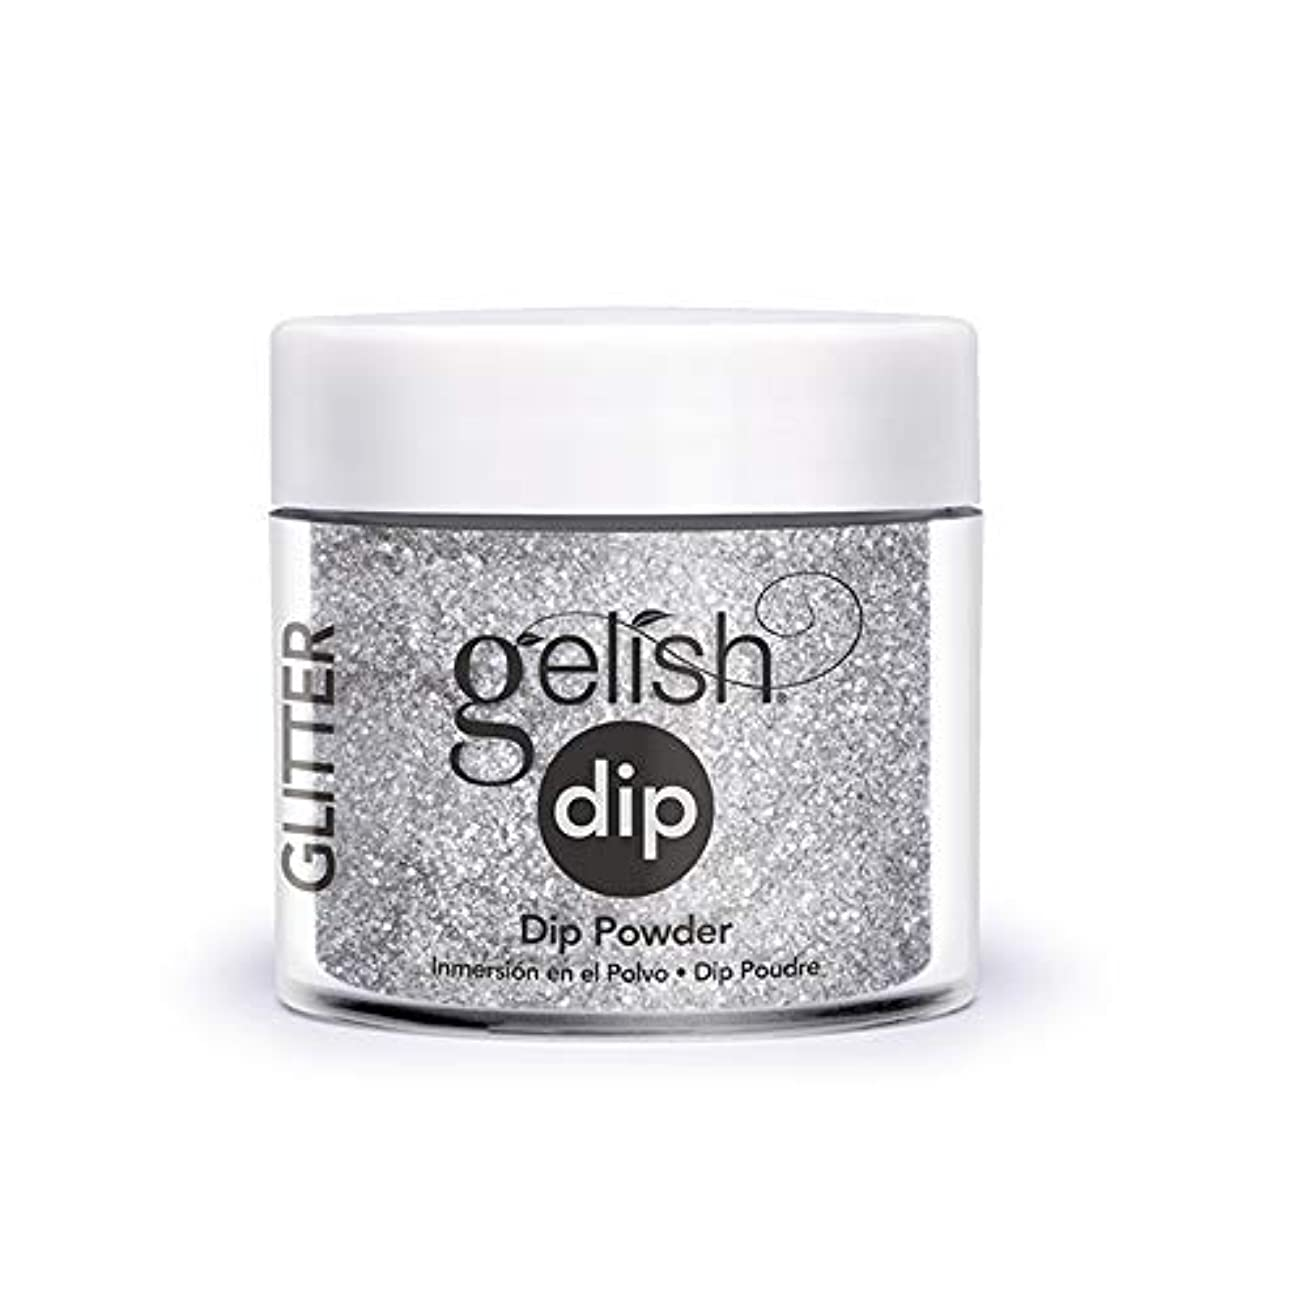 一般的なファーザーファージュうまくやる()Harmony Gelish - Acrylic Dip Powder - Time to Shine - 23g / 0.8oz